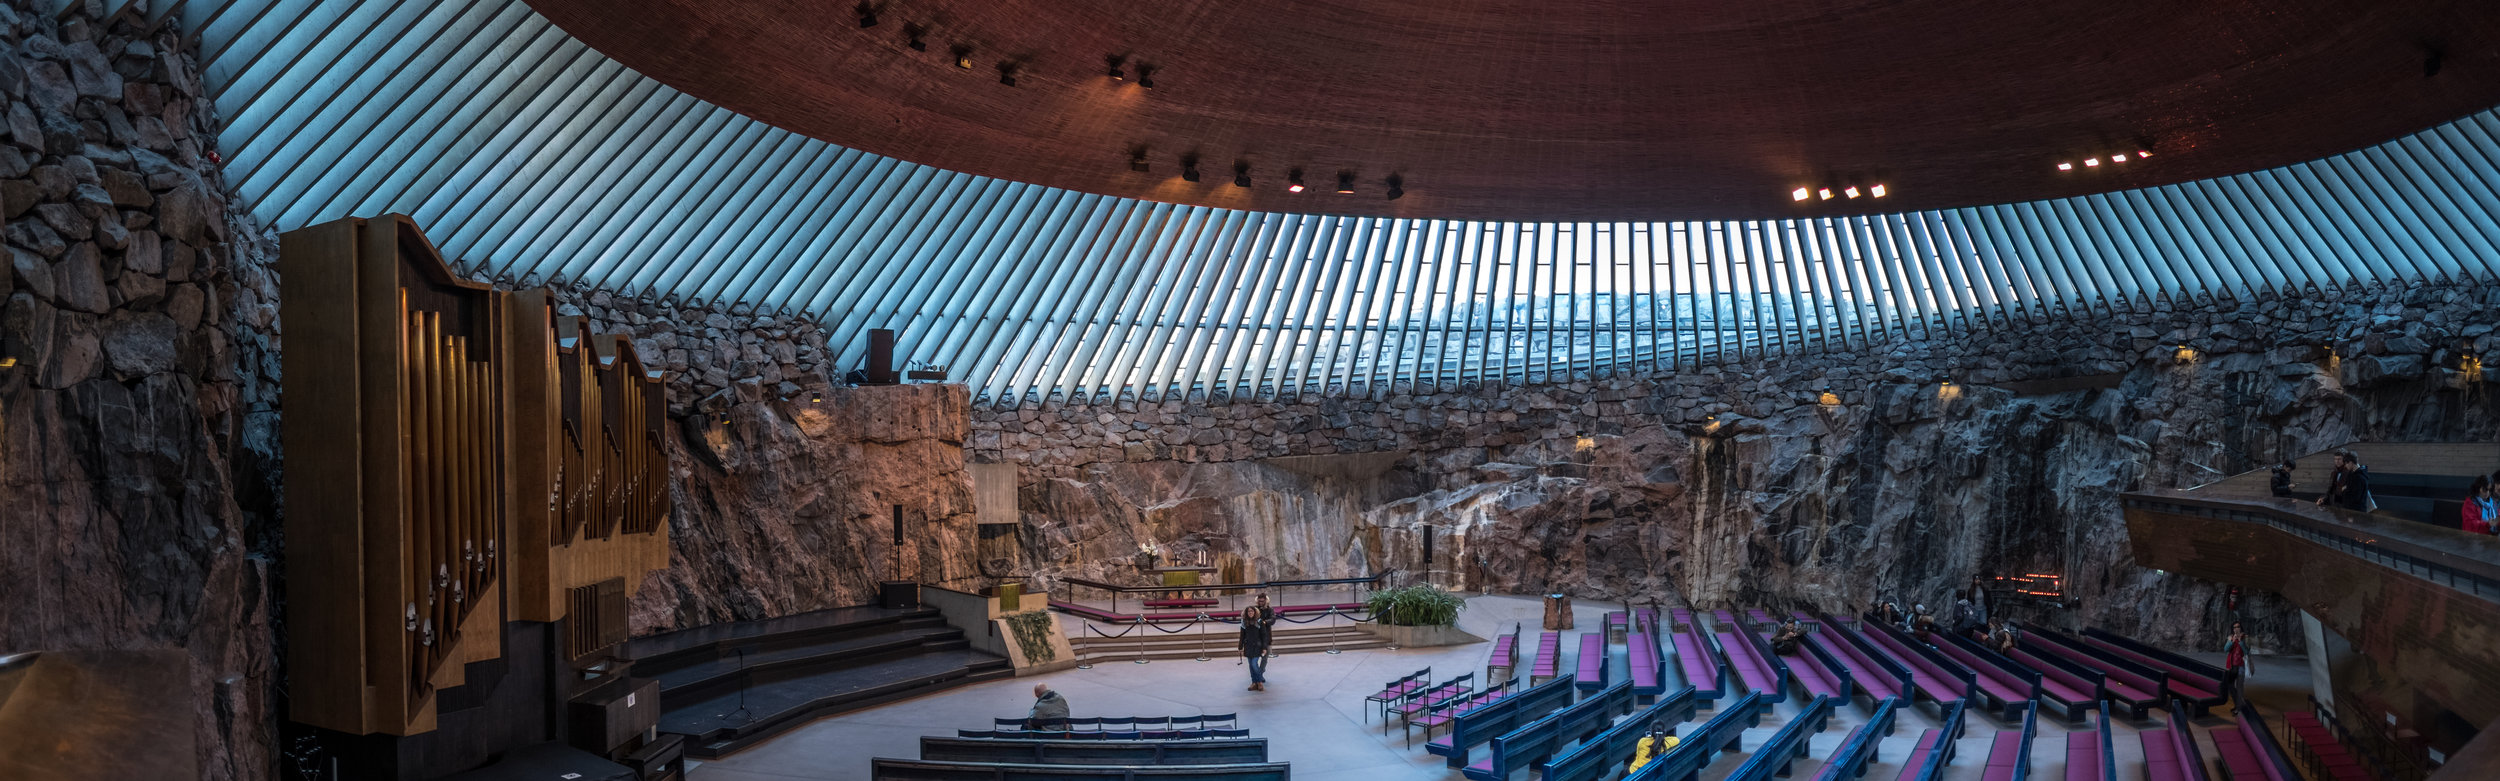 Fred+Howarth+Photography_Temppeliaukio+Rock+ Church.jpg